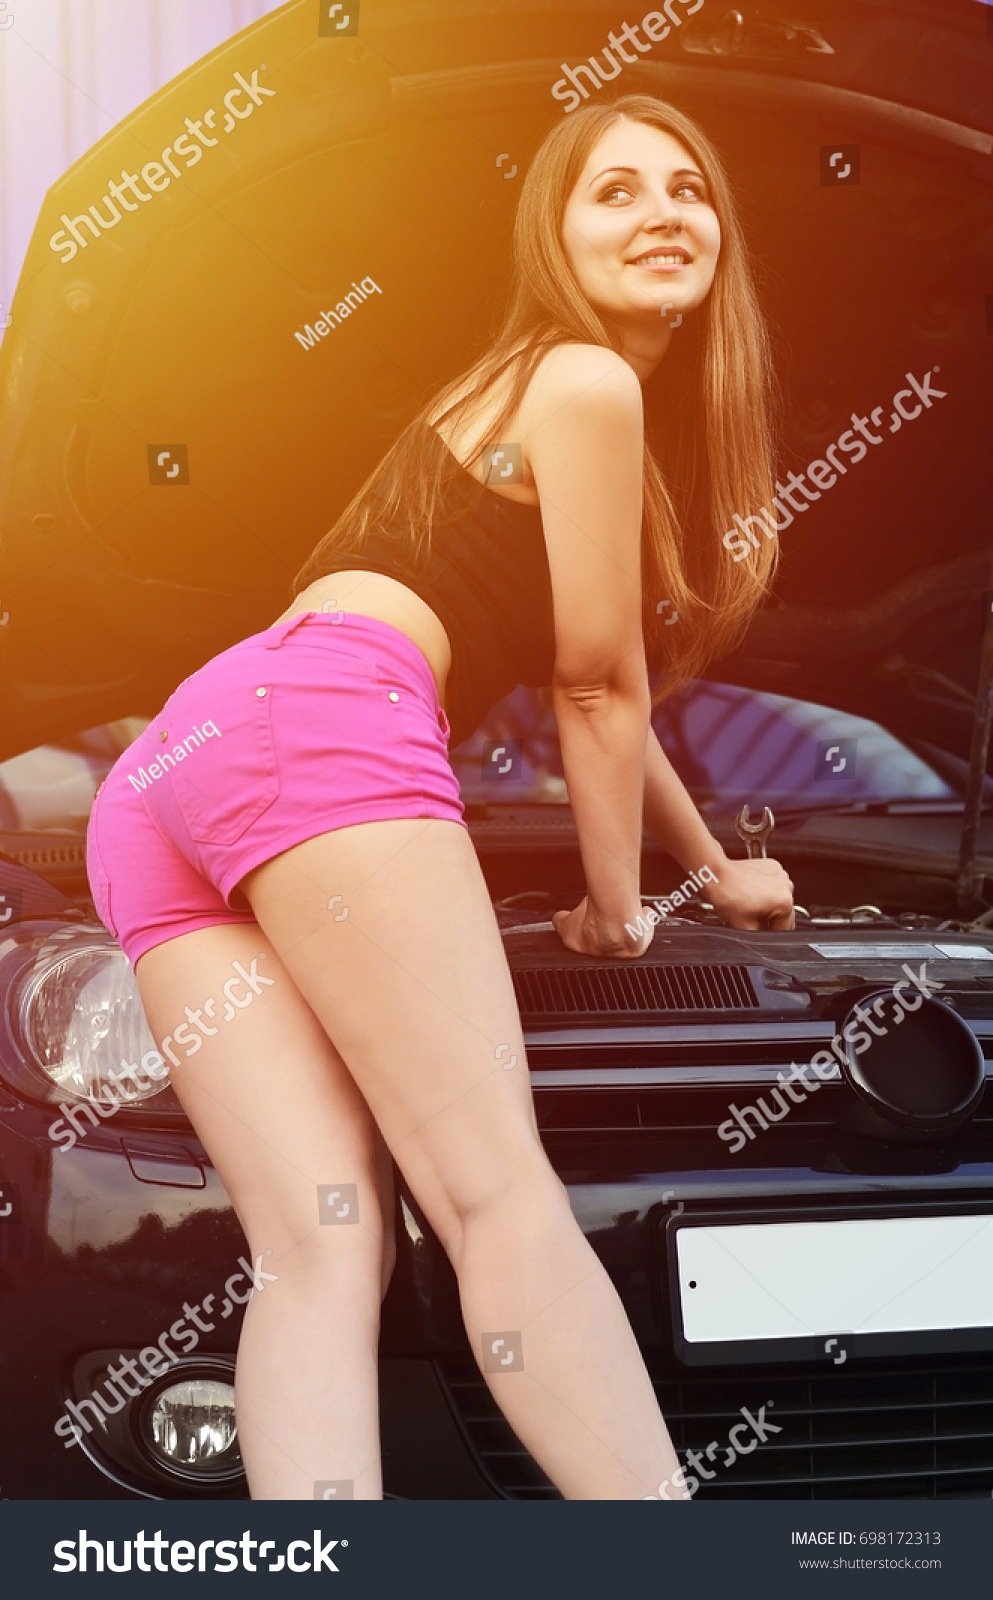 With shorts jockey girls hair blond young curly in